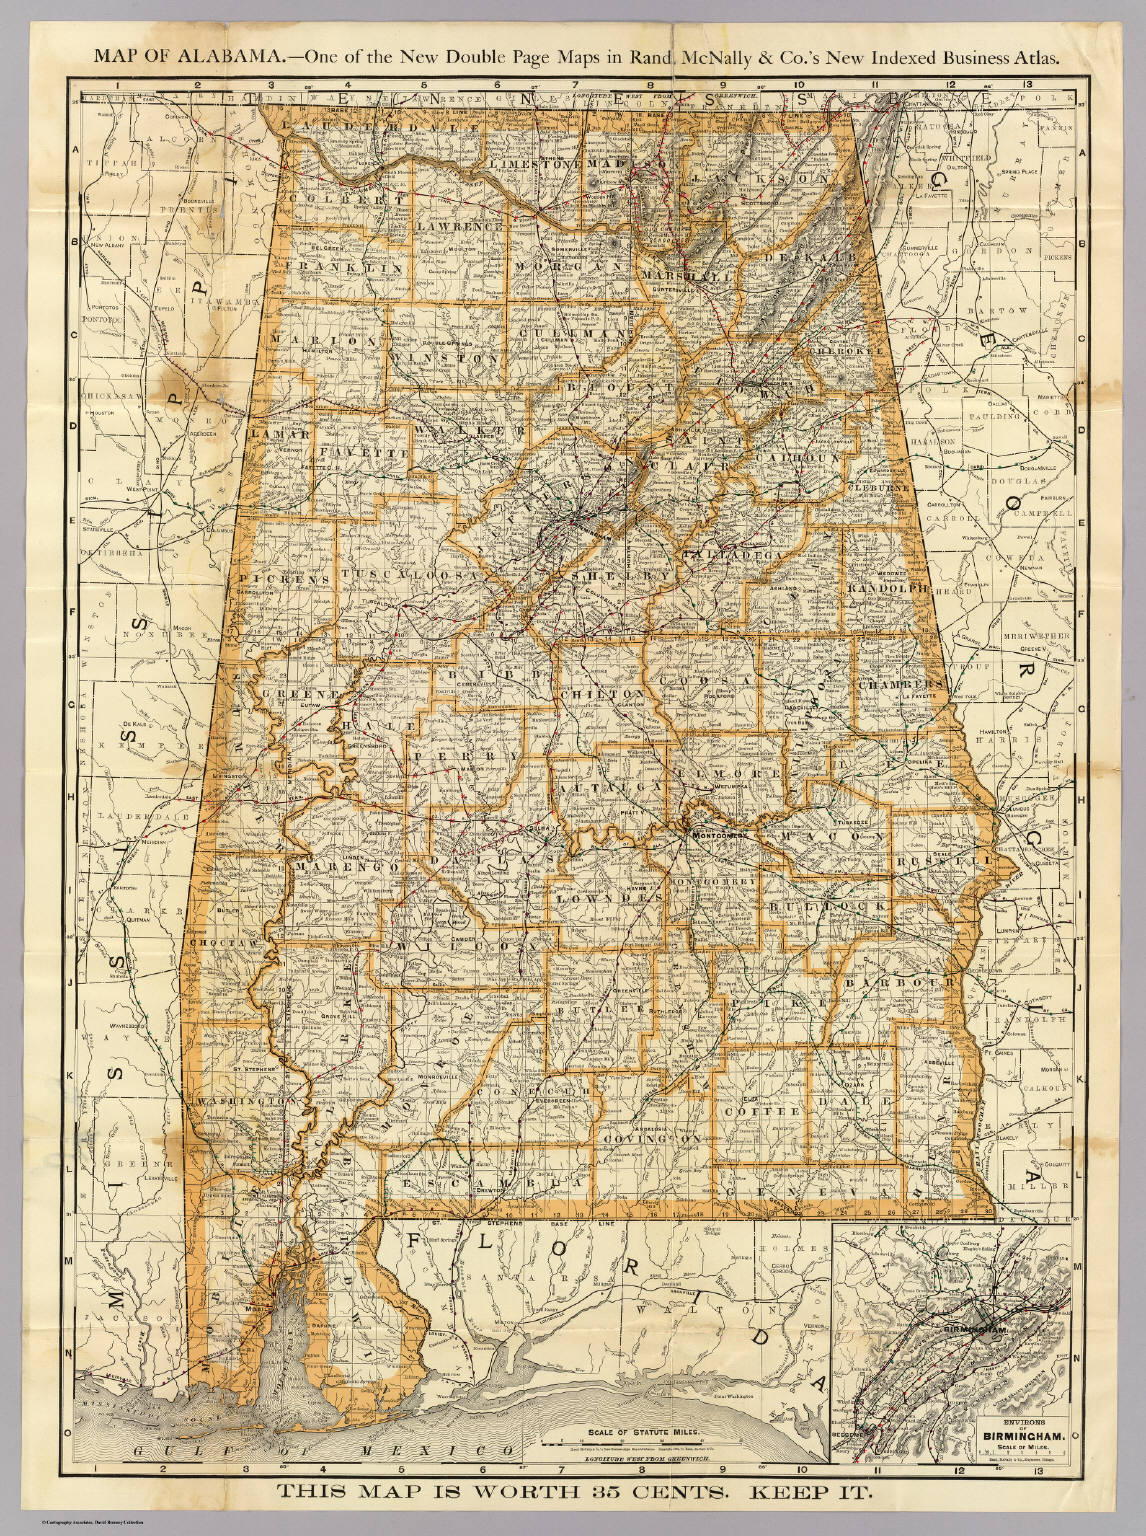 Of Alabama Rand McNally And Company - Maps of alabama